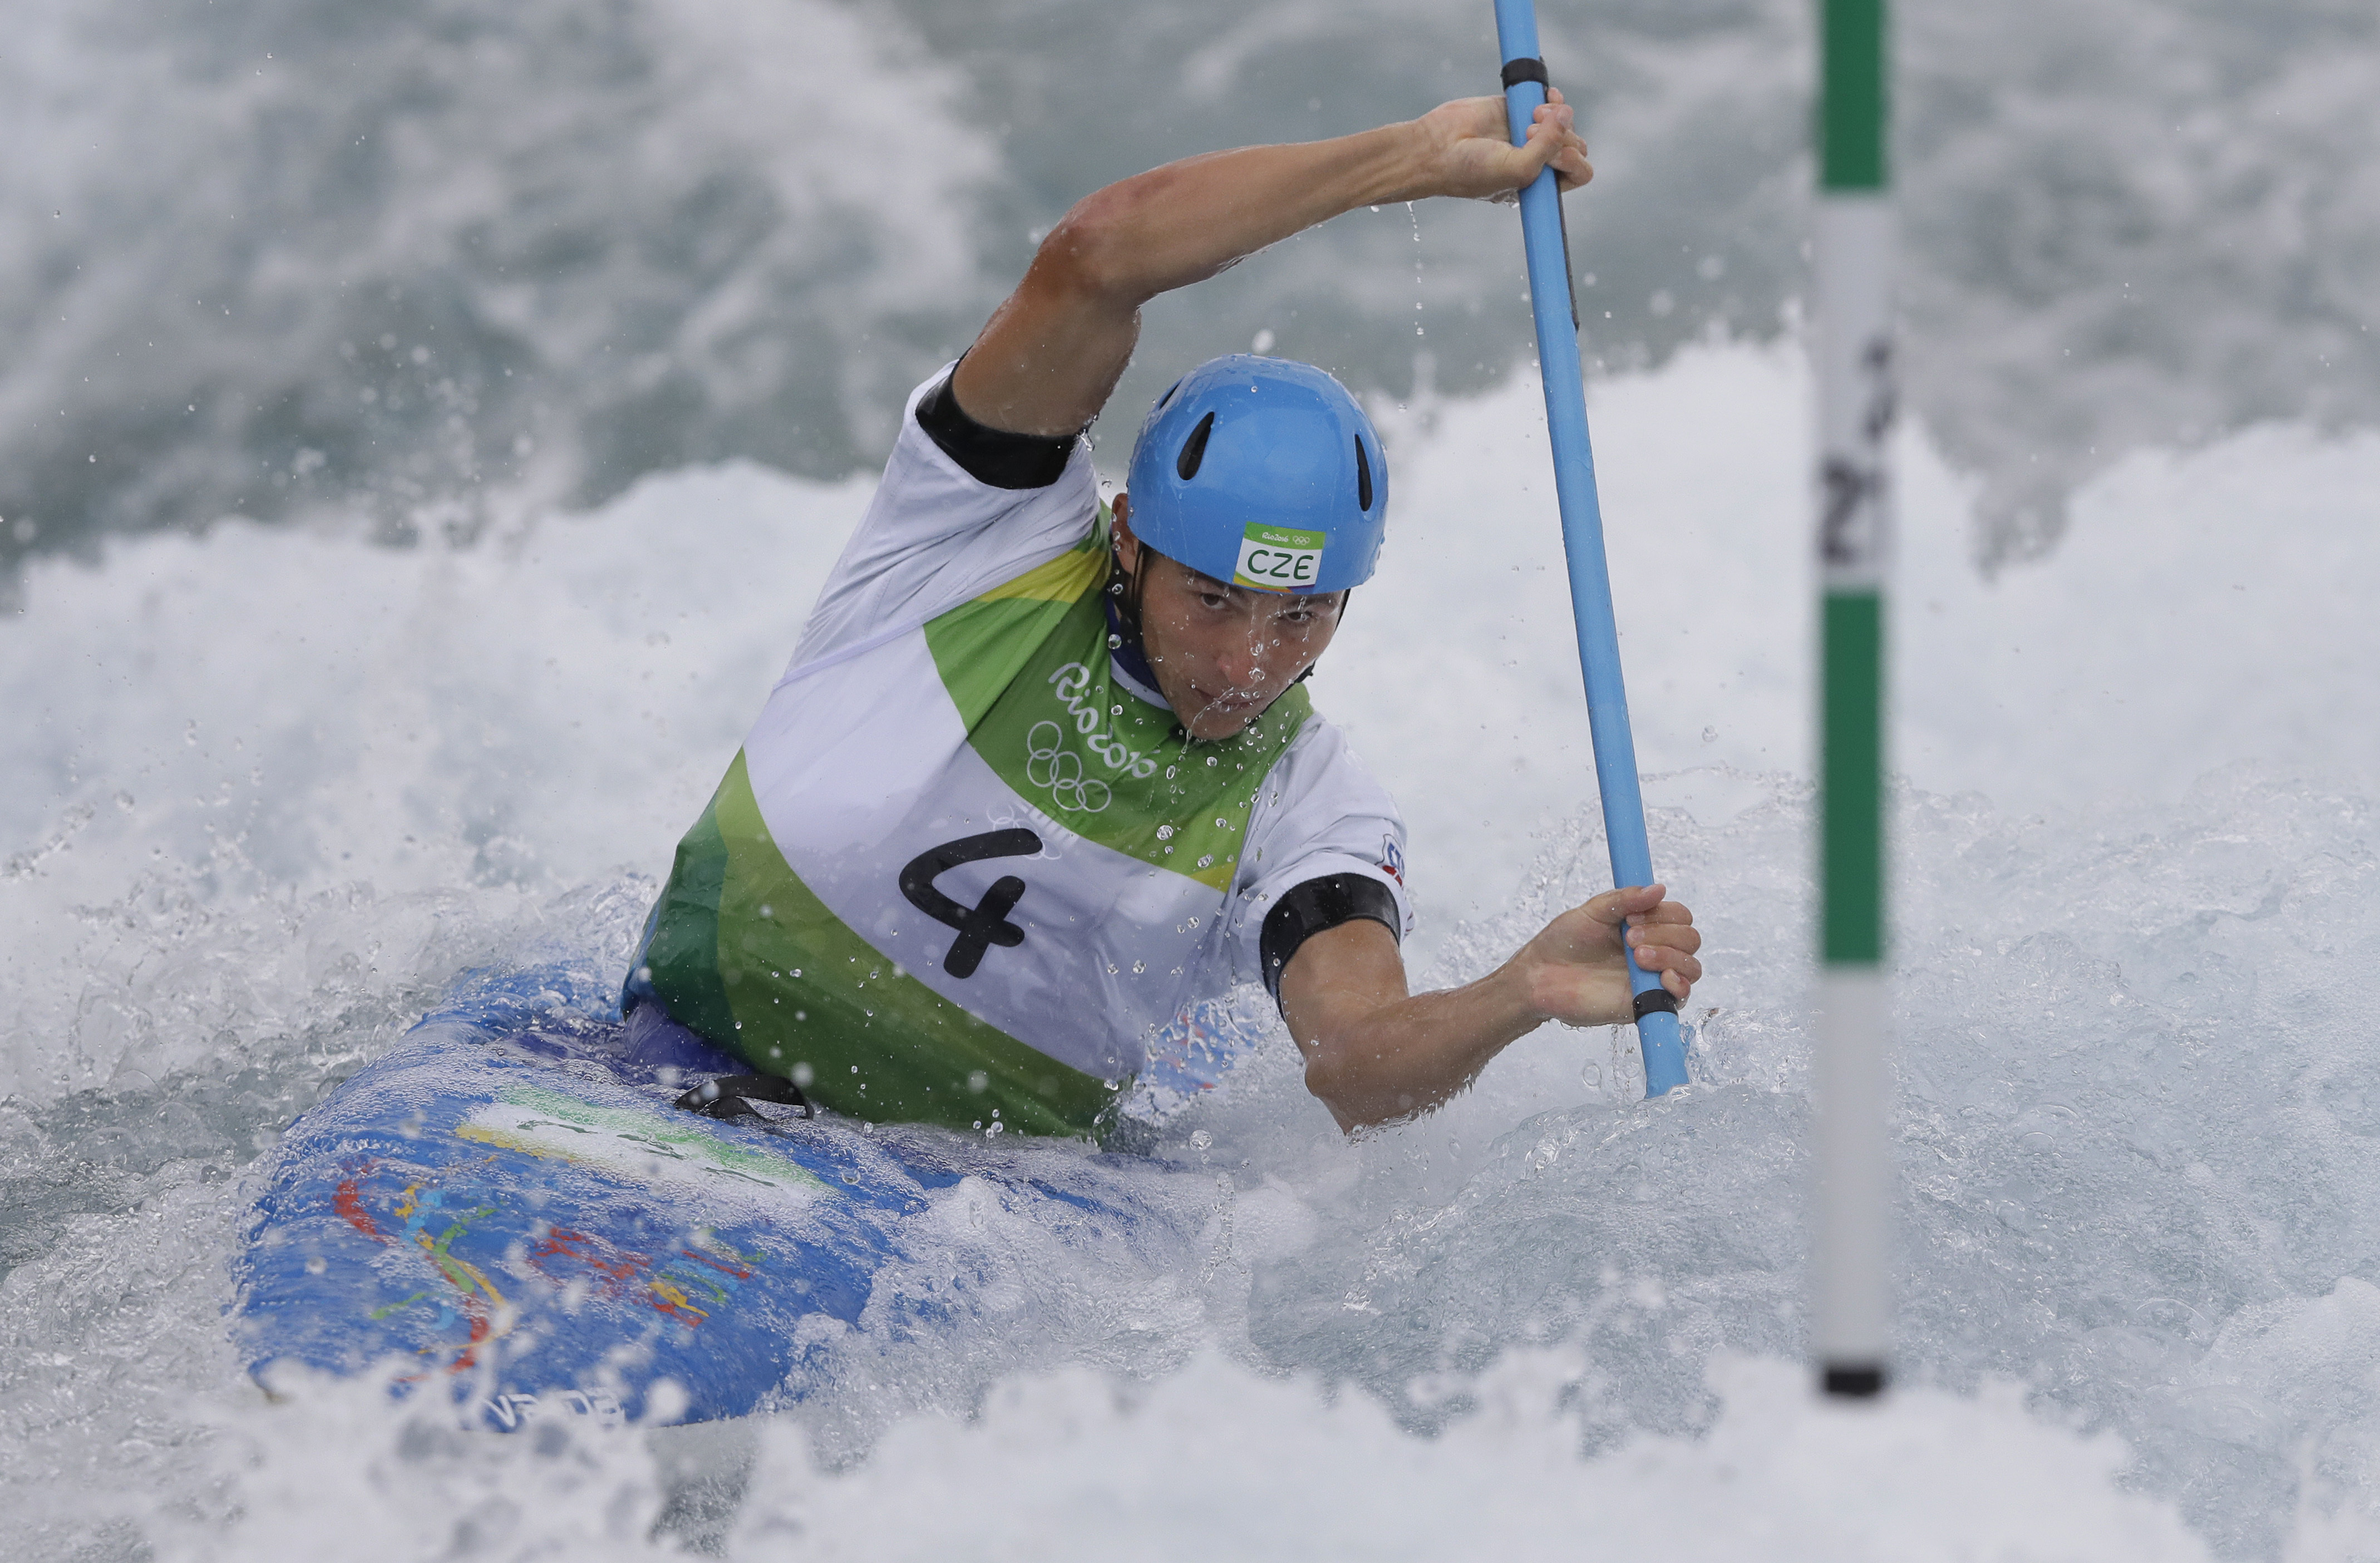 Jiri Prskavec of the Czech Republic competes during the kayak K1 men's semifinal of the Canoe Slalom at the 2016 Summer Olympics in Rio de Janeiro, Brazil, Wednesday, Aug. 10, 2016. (AP Photo/Kirsty Wigglesworth)